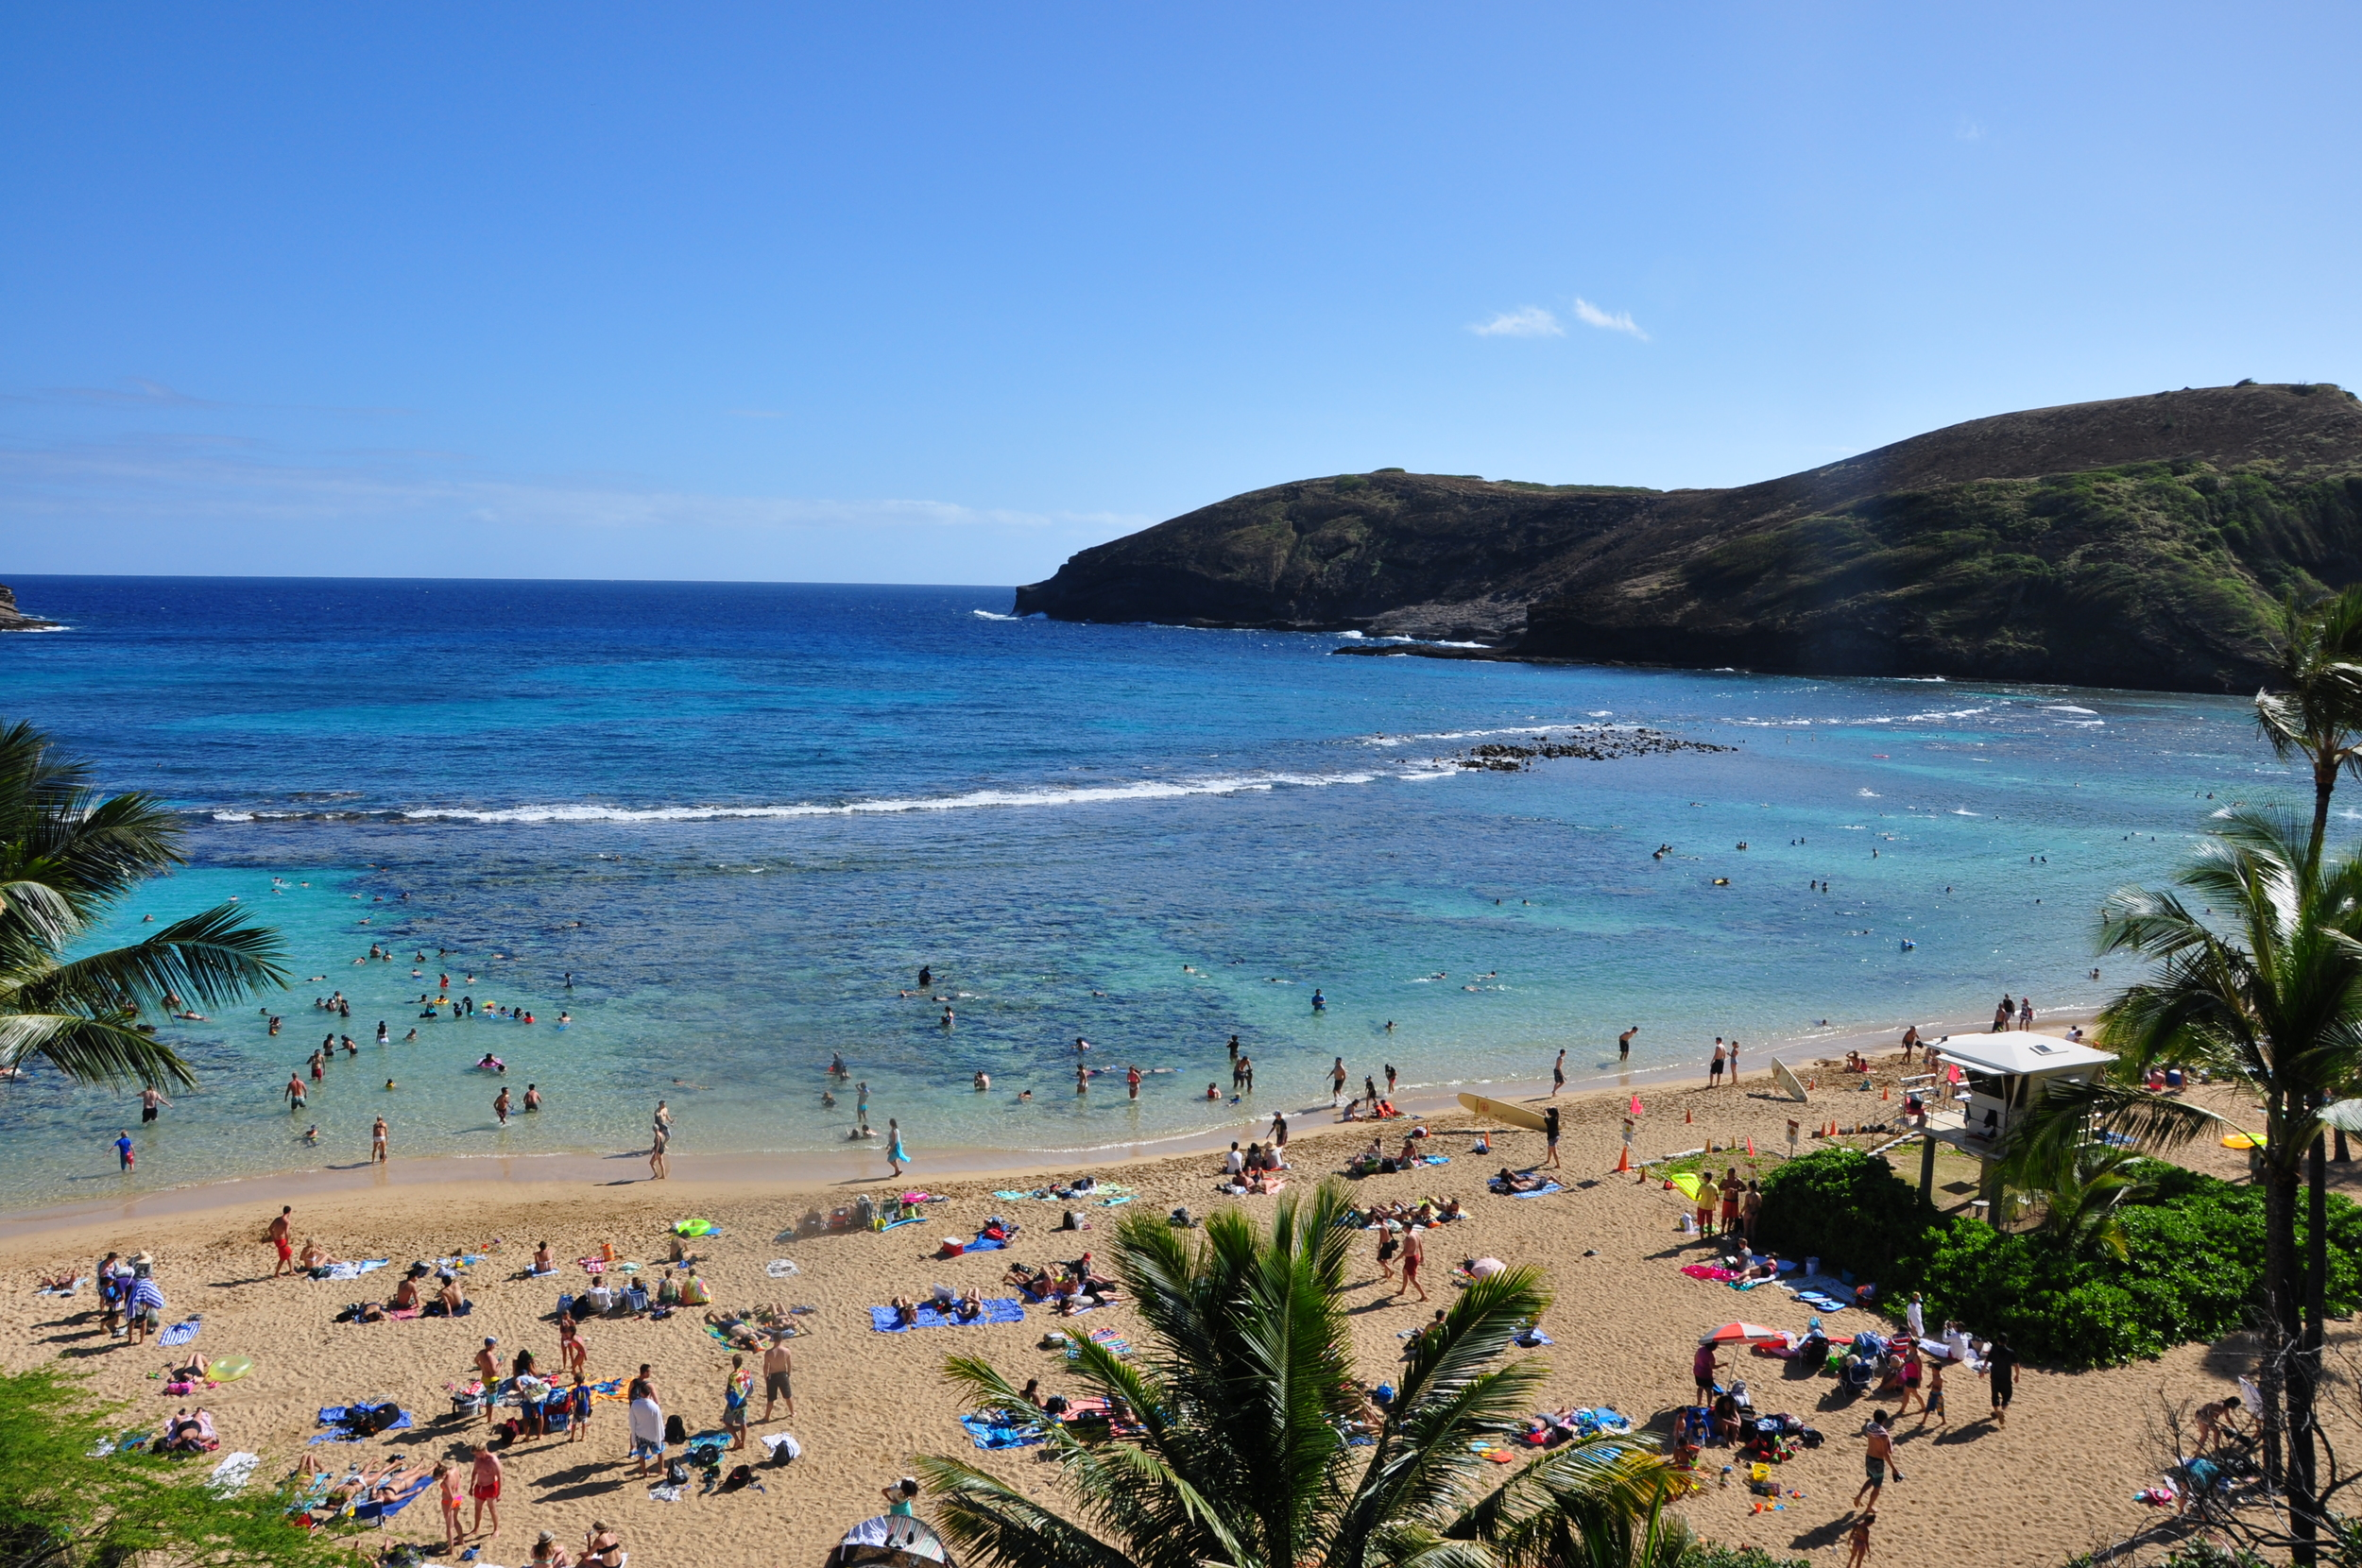 Hanauma Bay in 2016